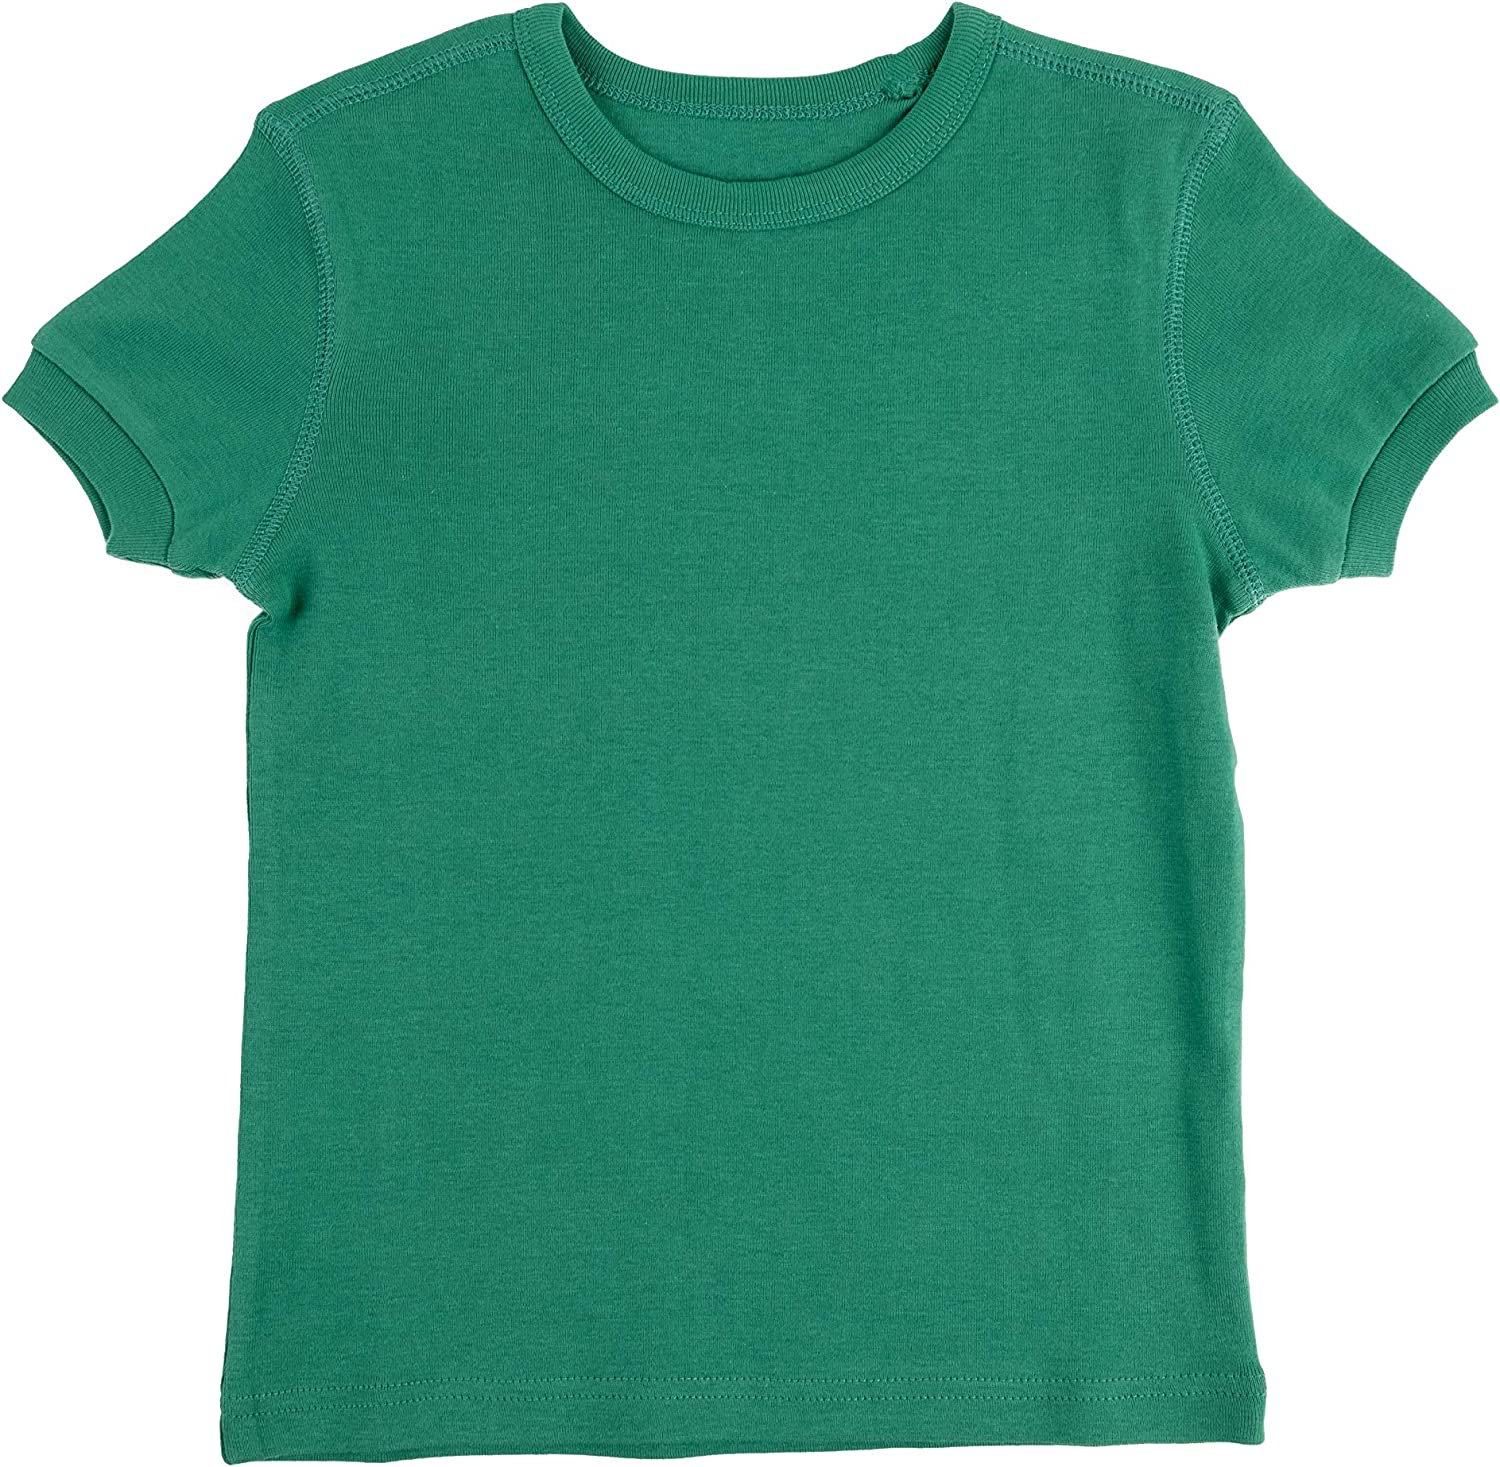 Variety of Colors Leveret Short Sleeve Boys Girls Kids /& Toddler T-Shirt 100/% Cotton 2-14 Years